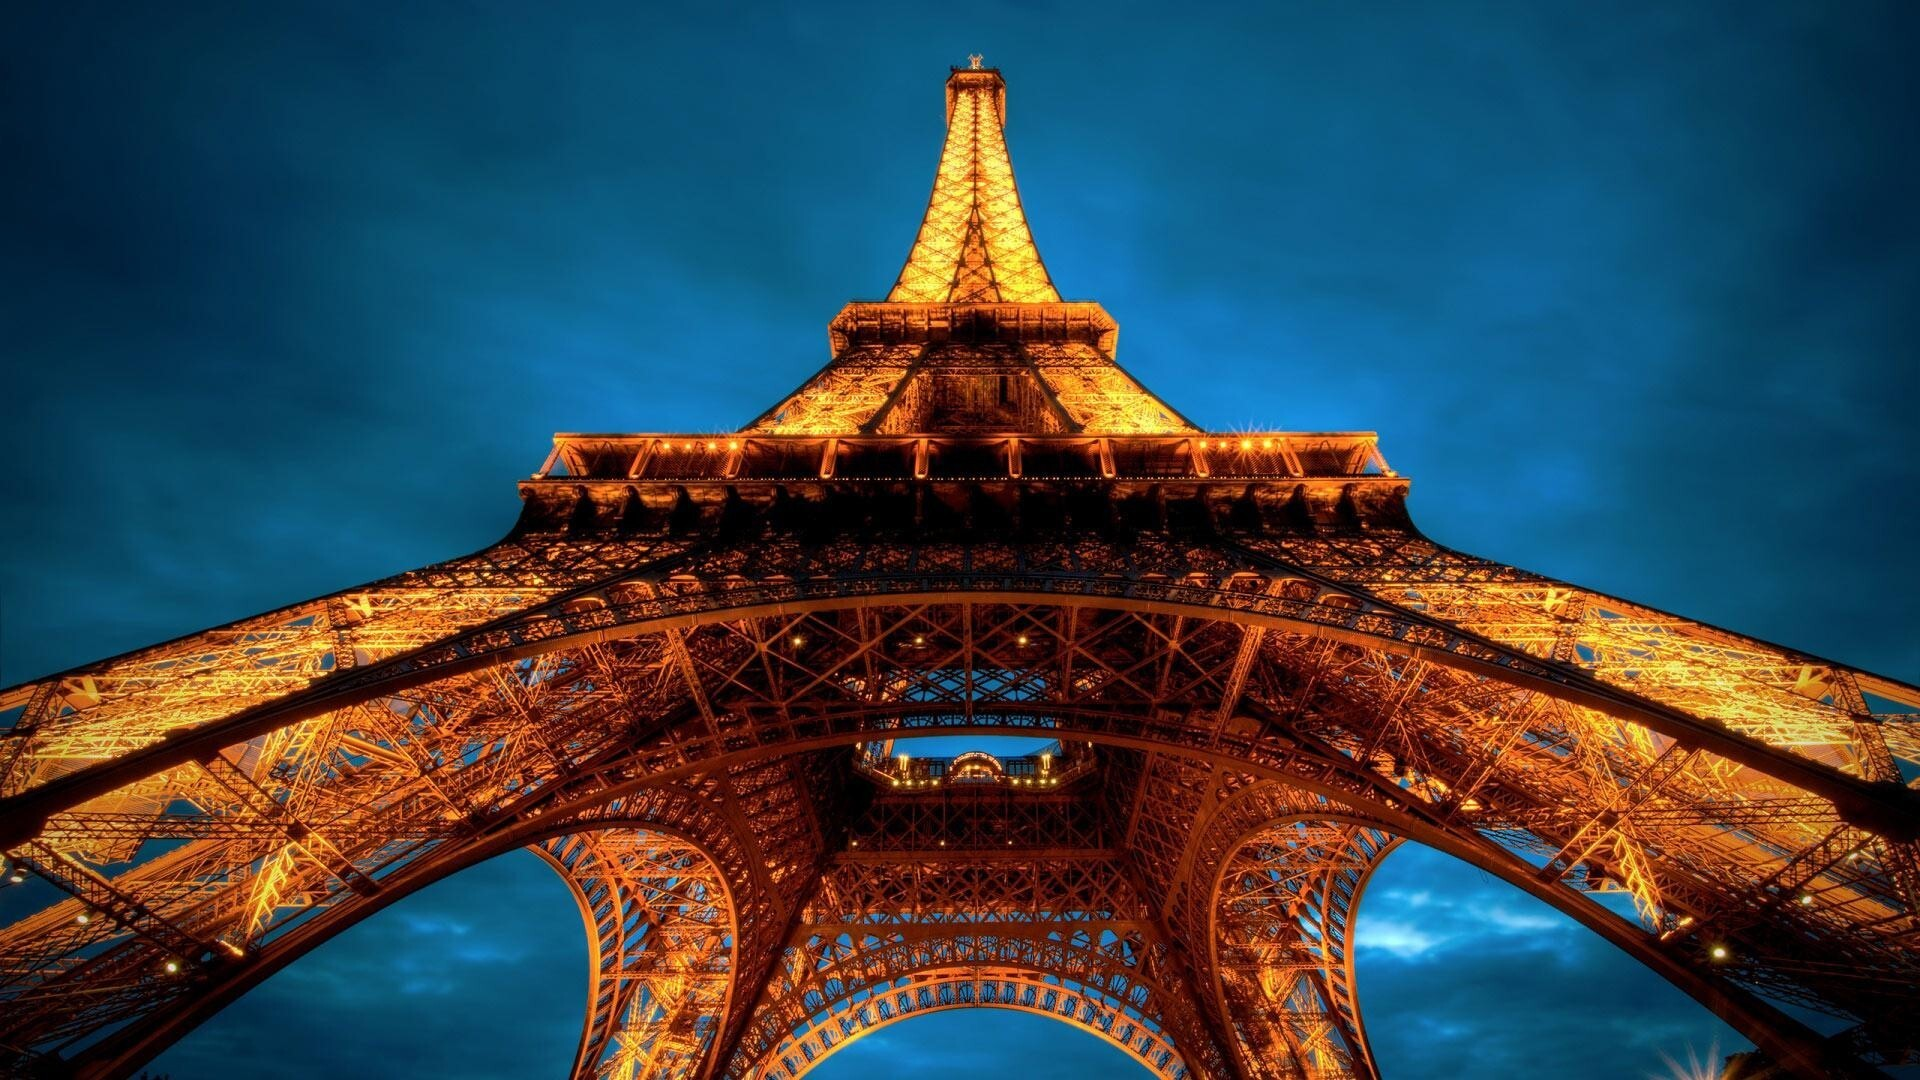 30 Best Things to Do in Paris, France